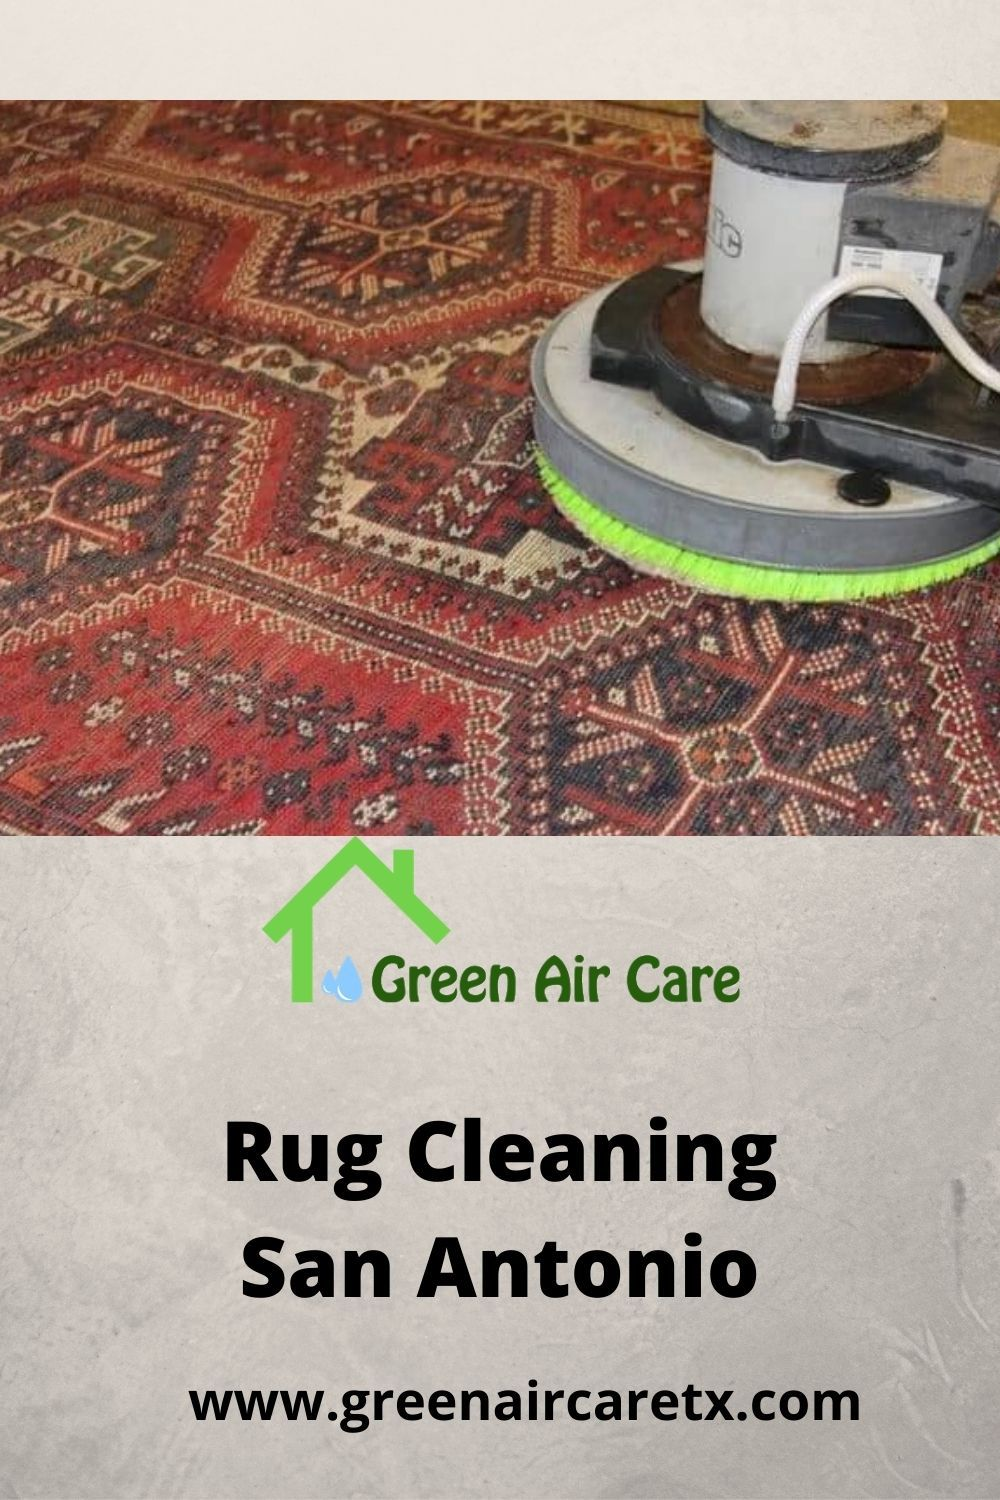 The area rug is found in every house near the door or bathroom. This the favorite space for every kid and pet to spend their time while playing. Moreover, the area rug faces heavy traffic on daily faces and attracts lots of bacteria and allergens. Most of the house owners often forget about cleaning their area rug, but this may lead to serious health issues.  call us today at (210) 810-2629.  #rugcleaning #rugcleaners #bestrugcleaning #professionalrugcleaning #rugcleaninginsanantonio